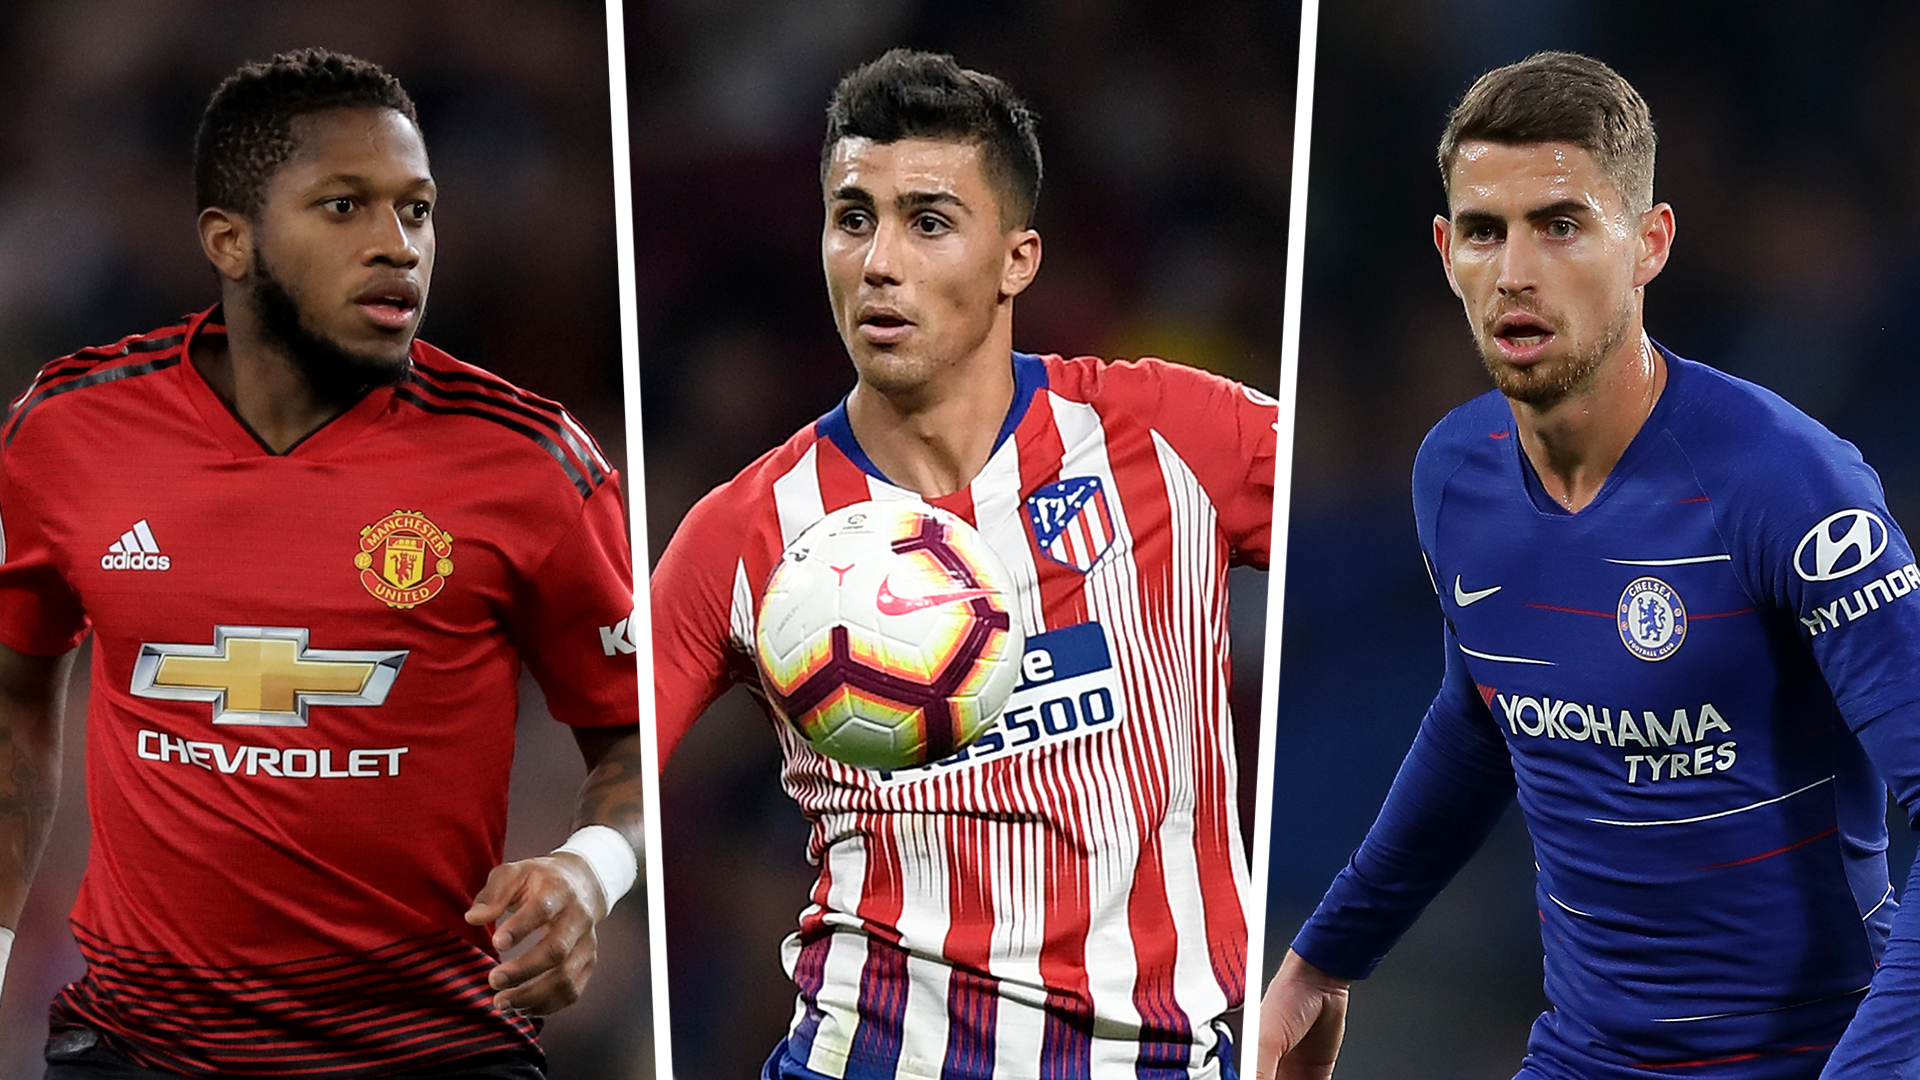 Man City make €70m Rodri their record signing